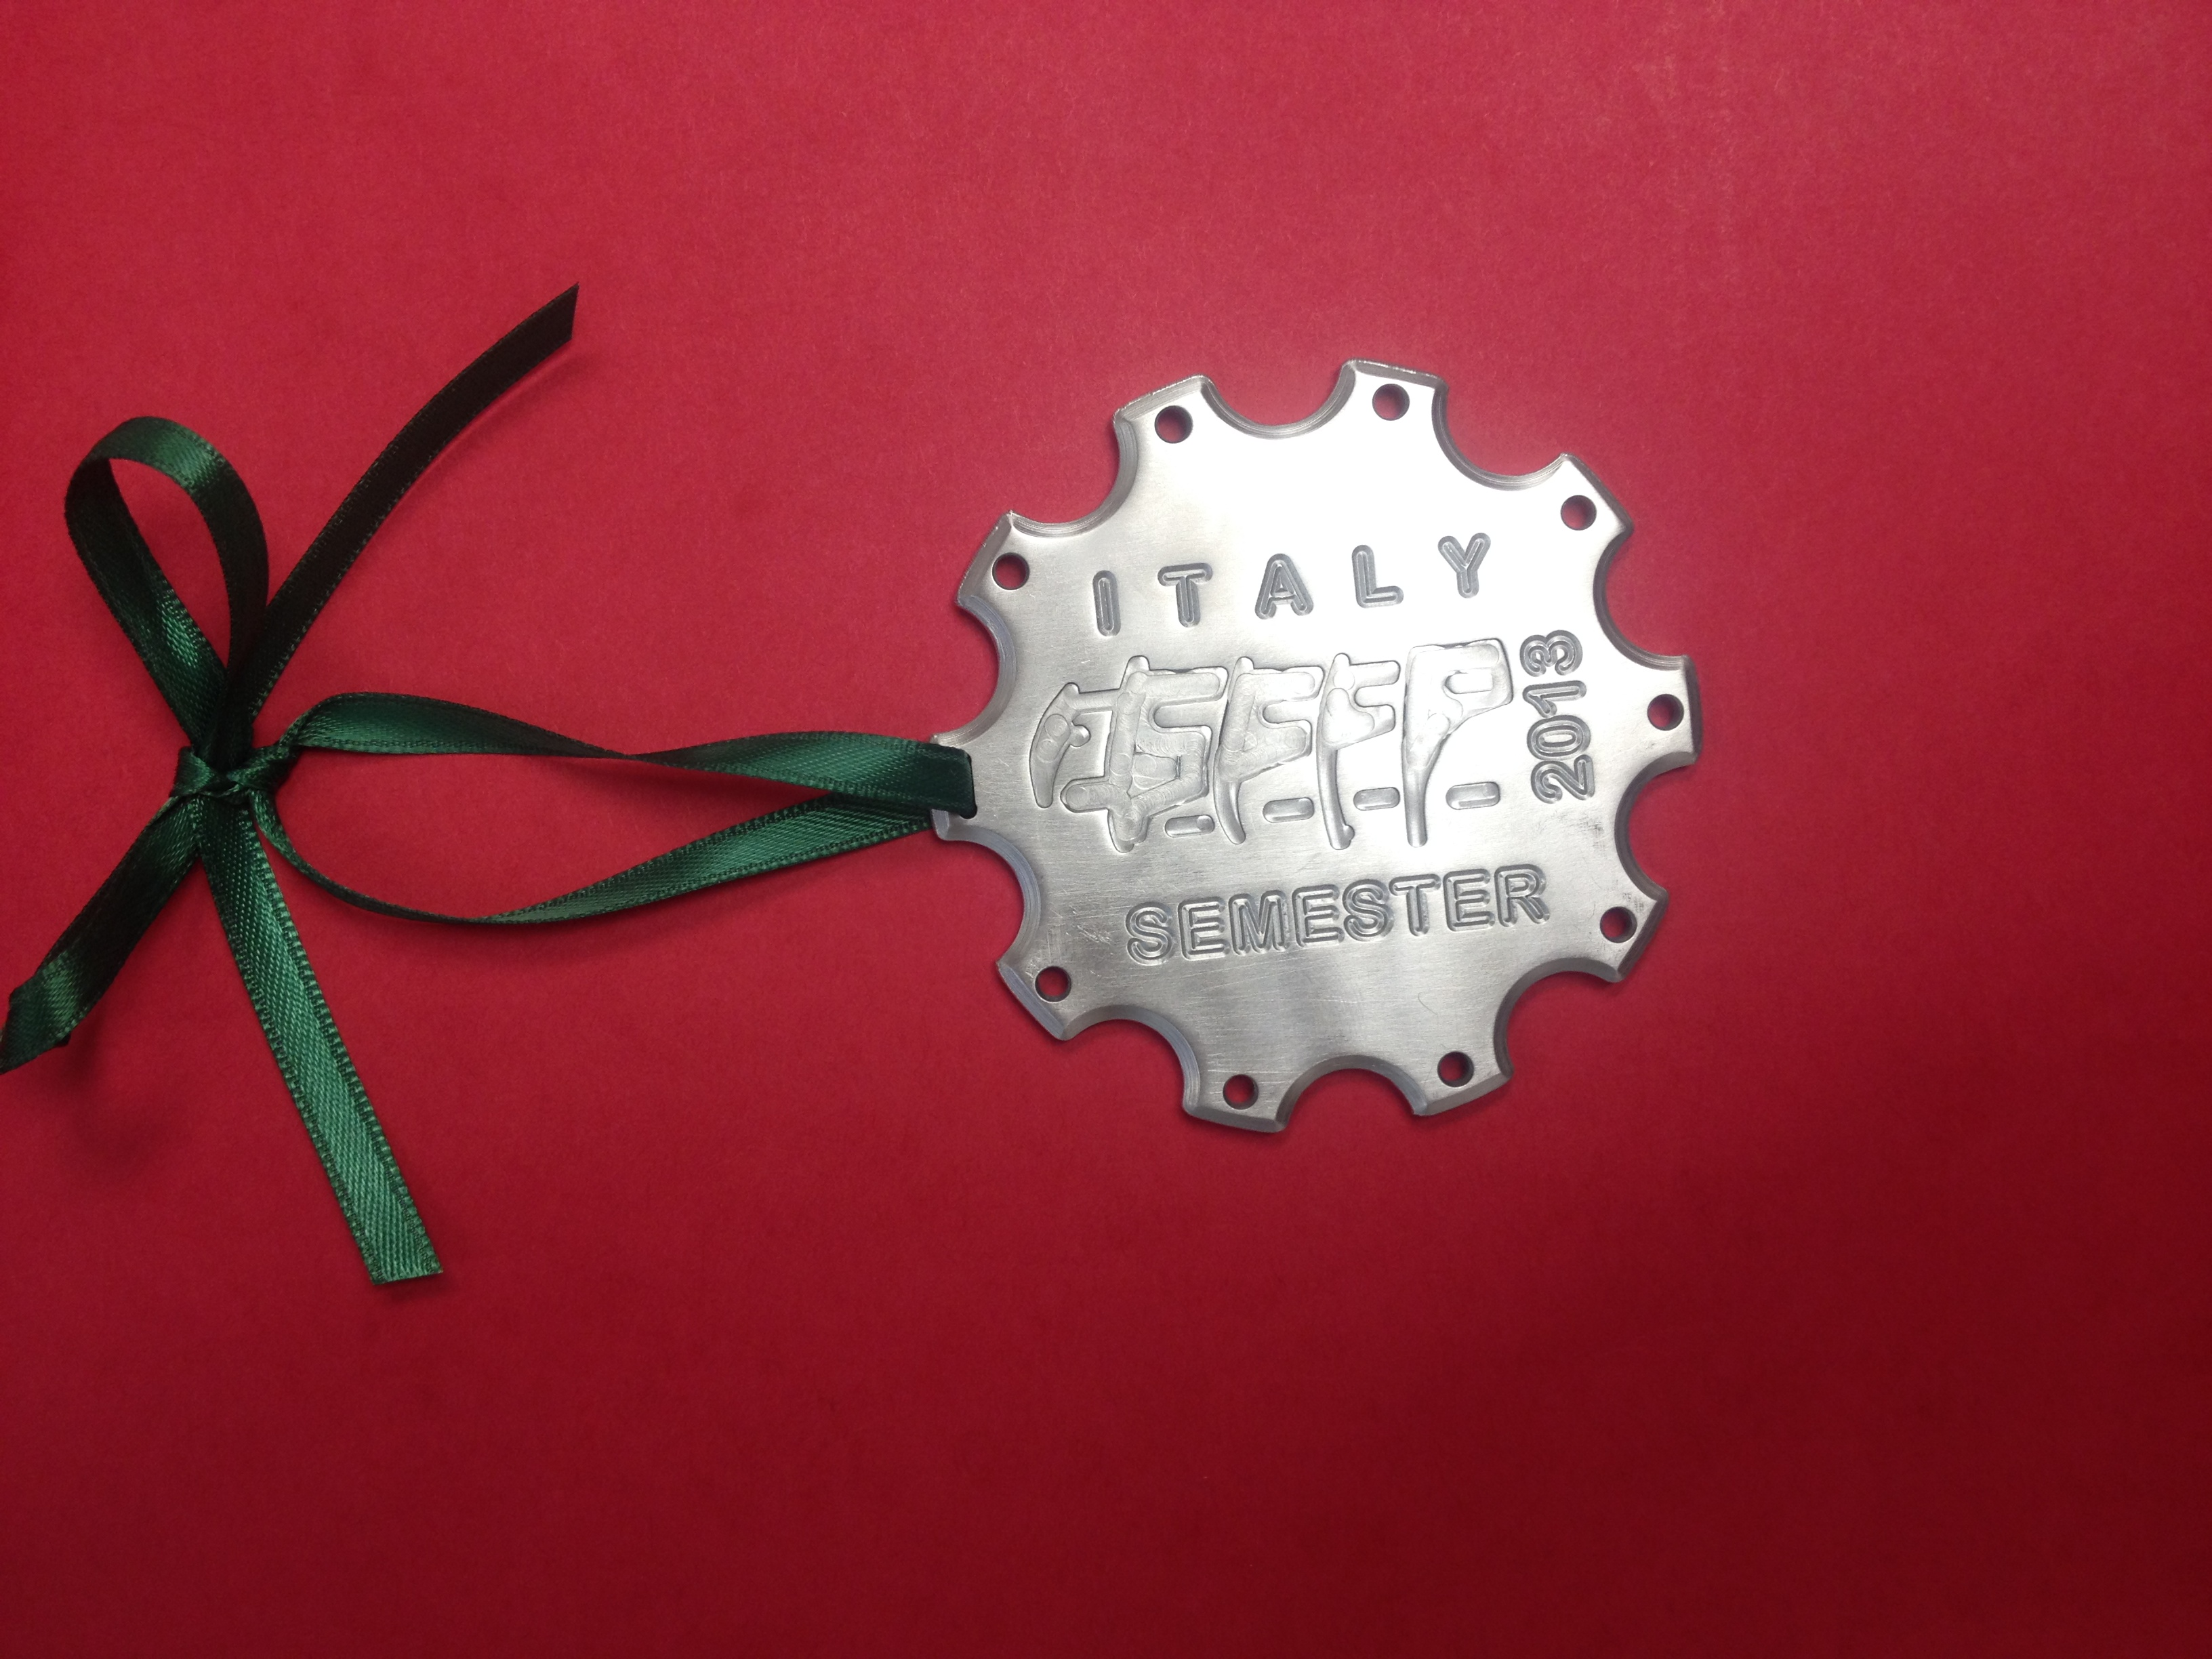 Italy Semester-themed ornaments for sale